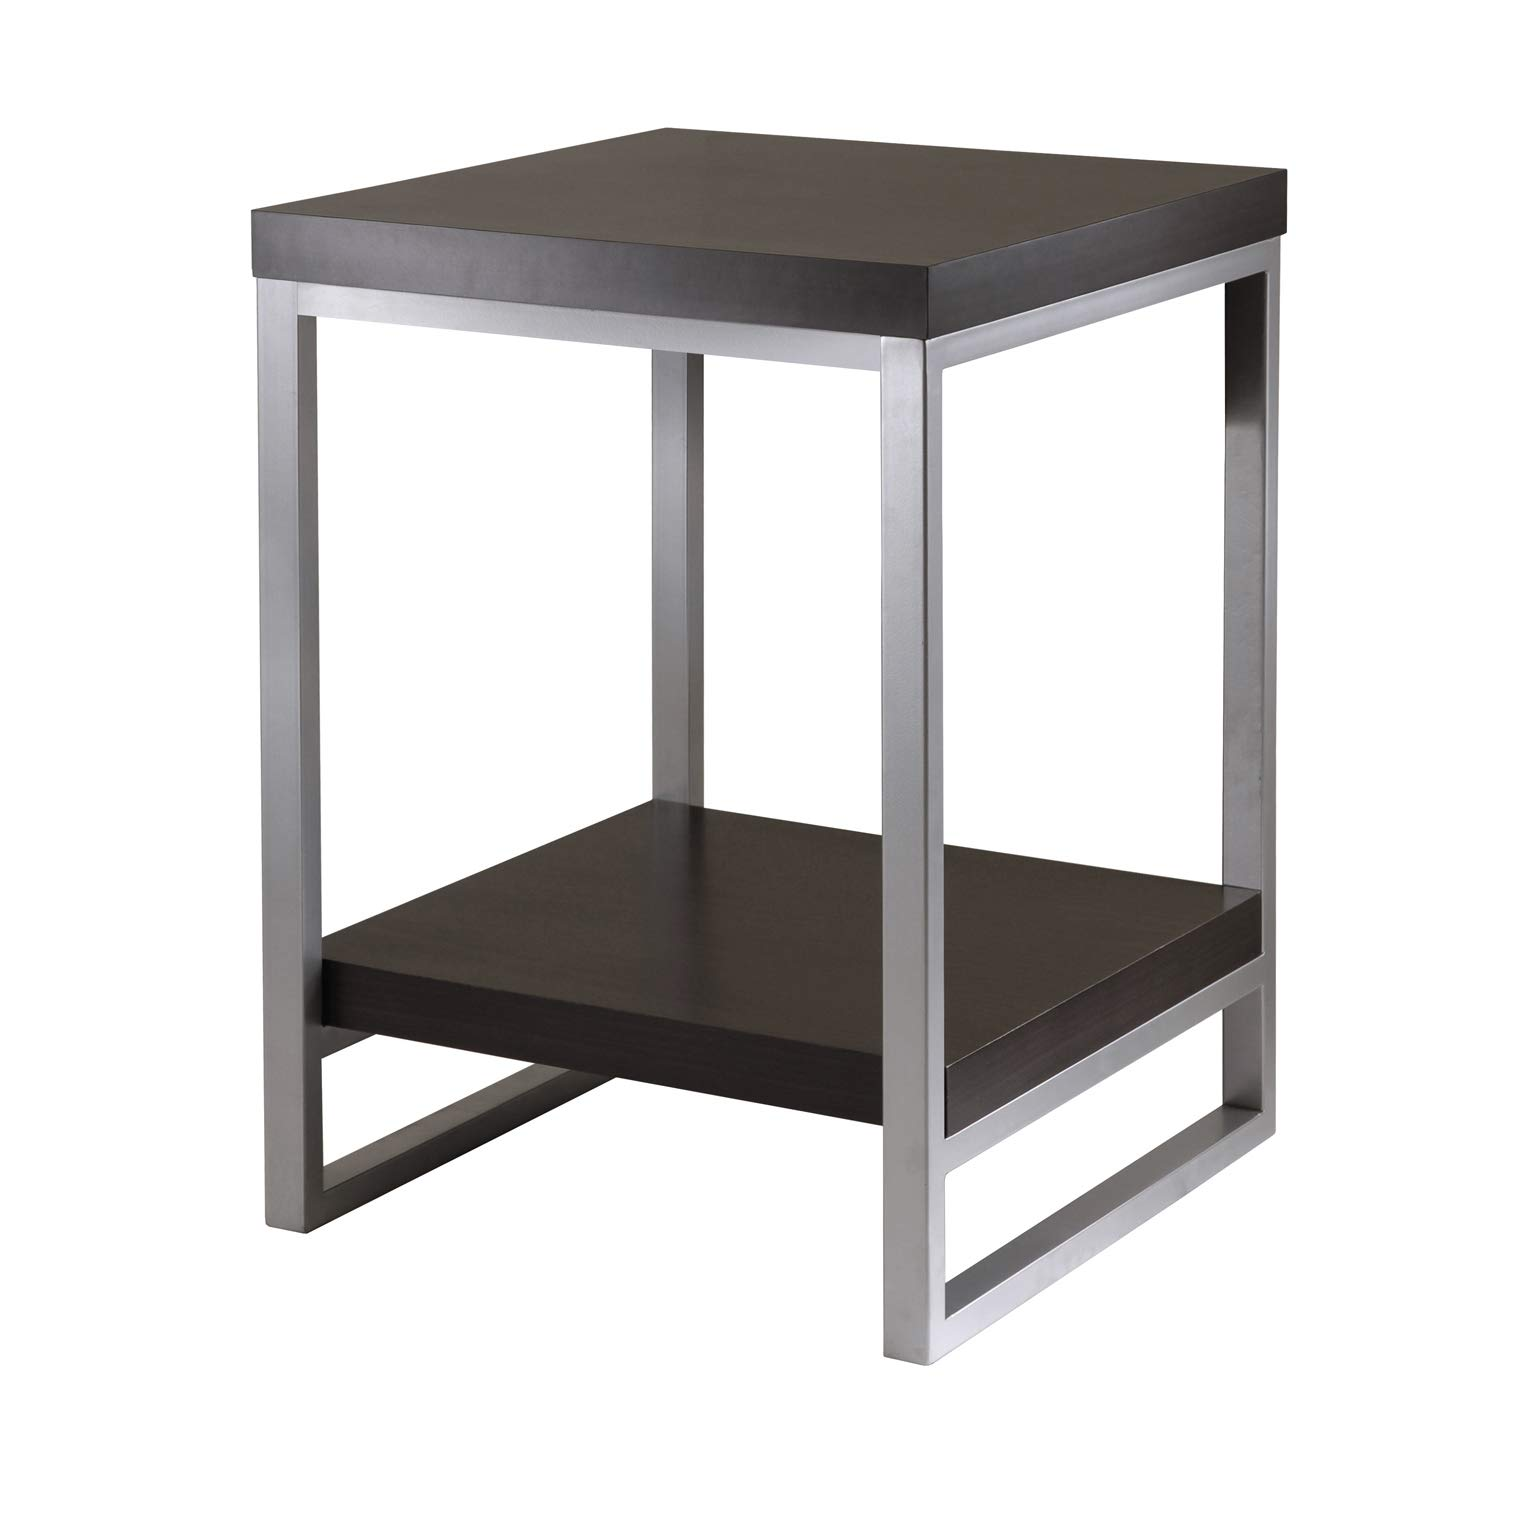 Winsome Wood Jared End Table, Espresso Finish by Winsome Wood